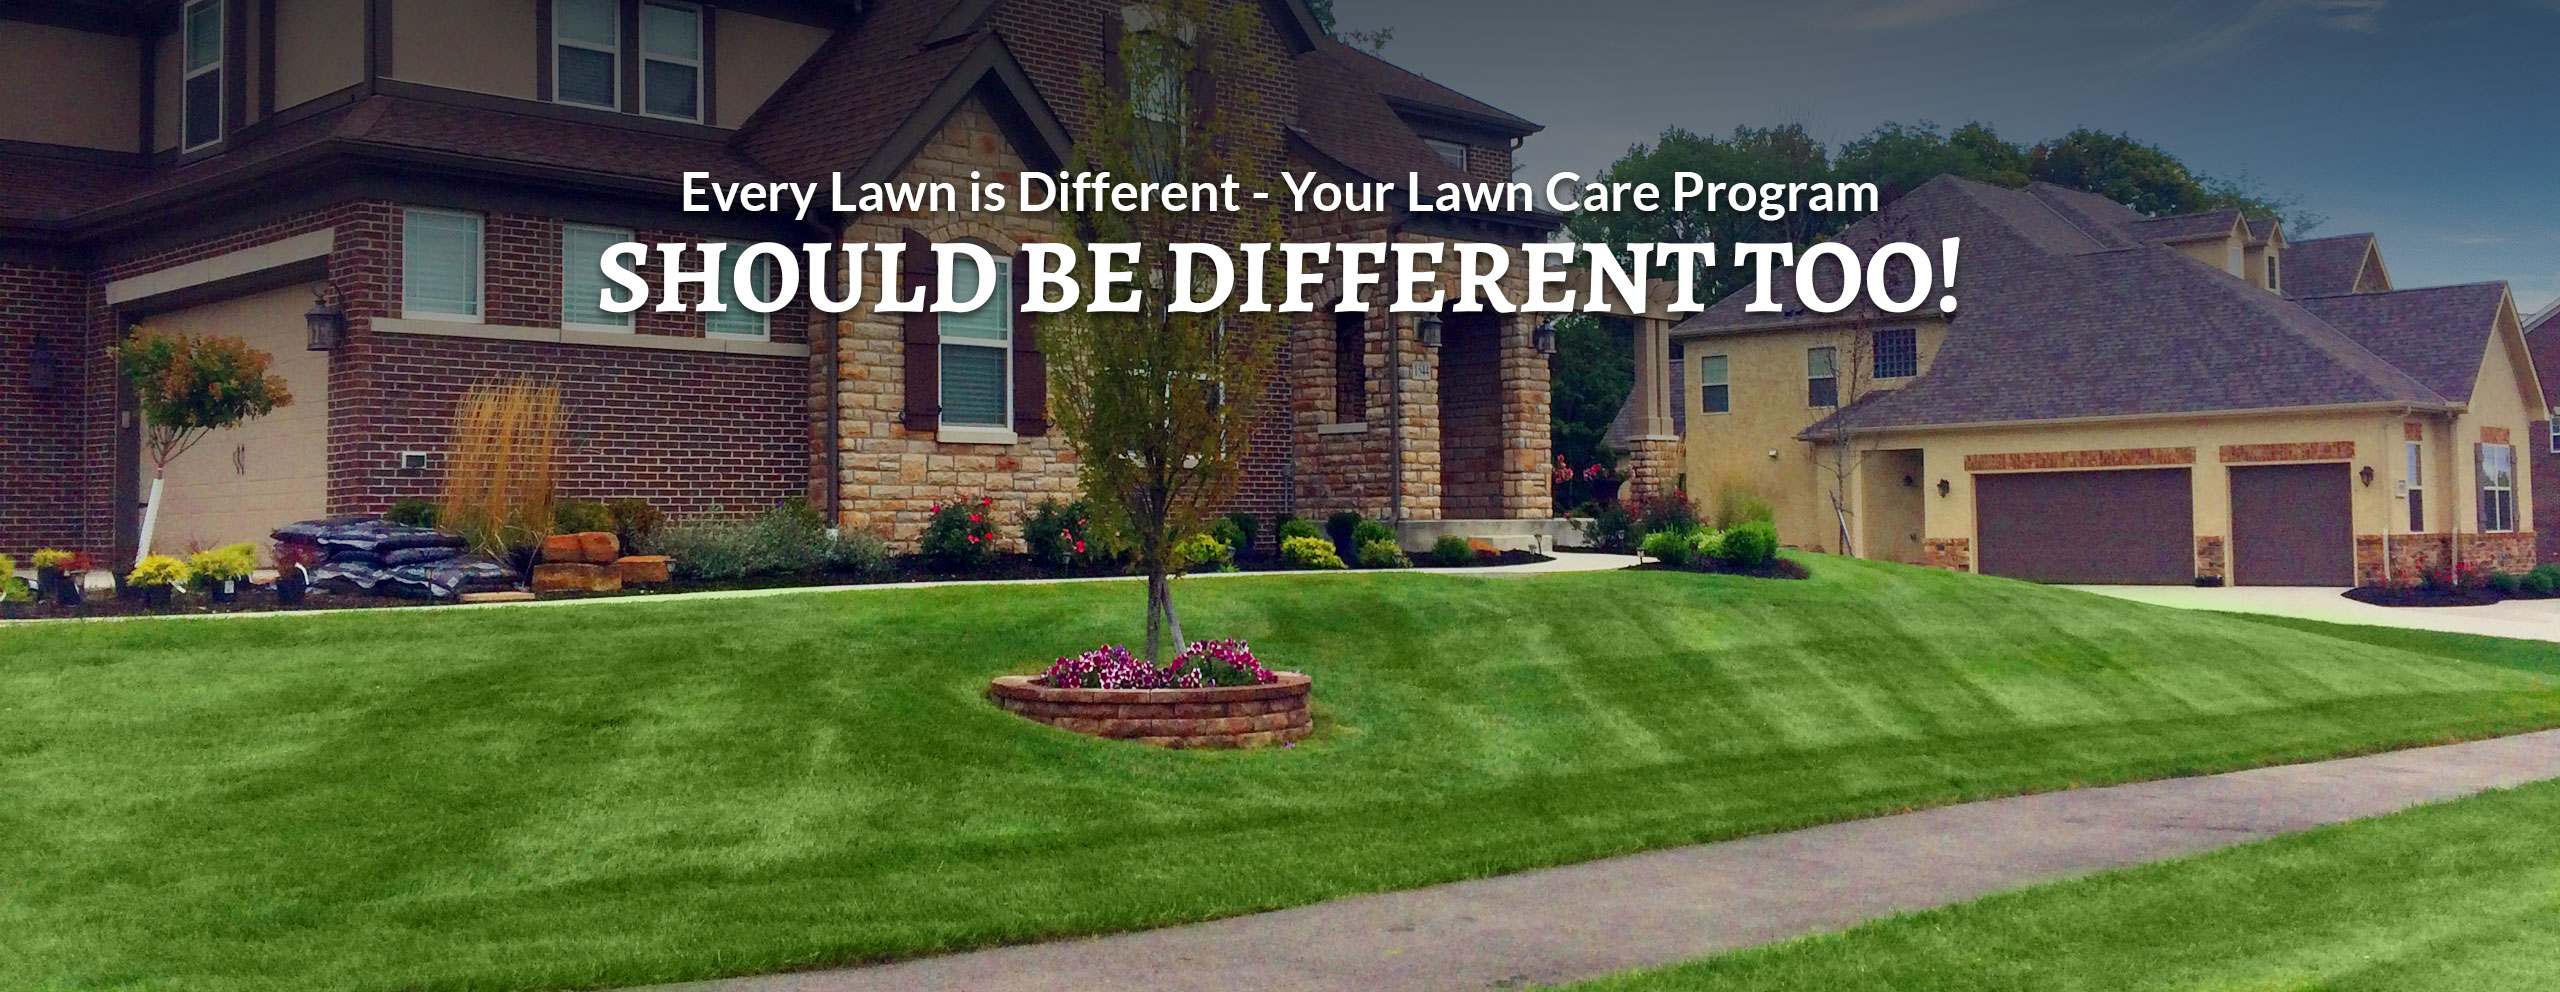 slide-04-every-lawn-is-different-your-lawn-care-program-should-be-different-too